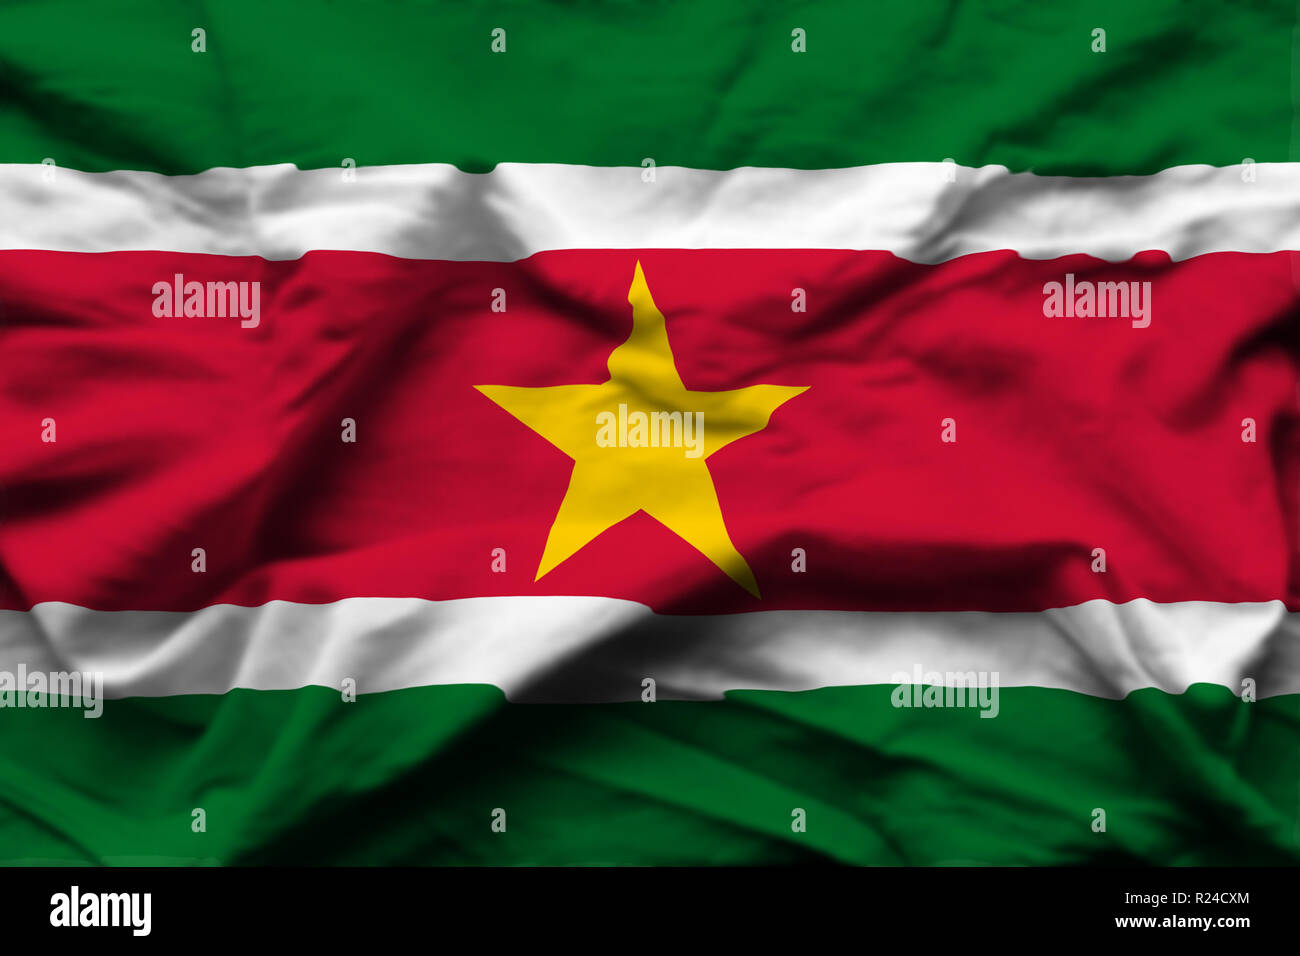 Suriname 3D wrinkled flag illustration. Usable for background and texture. - Stock Image